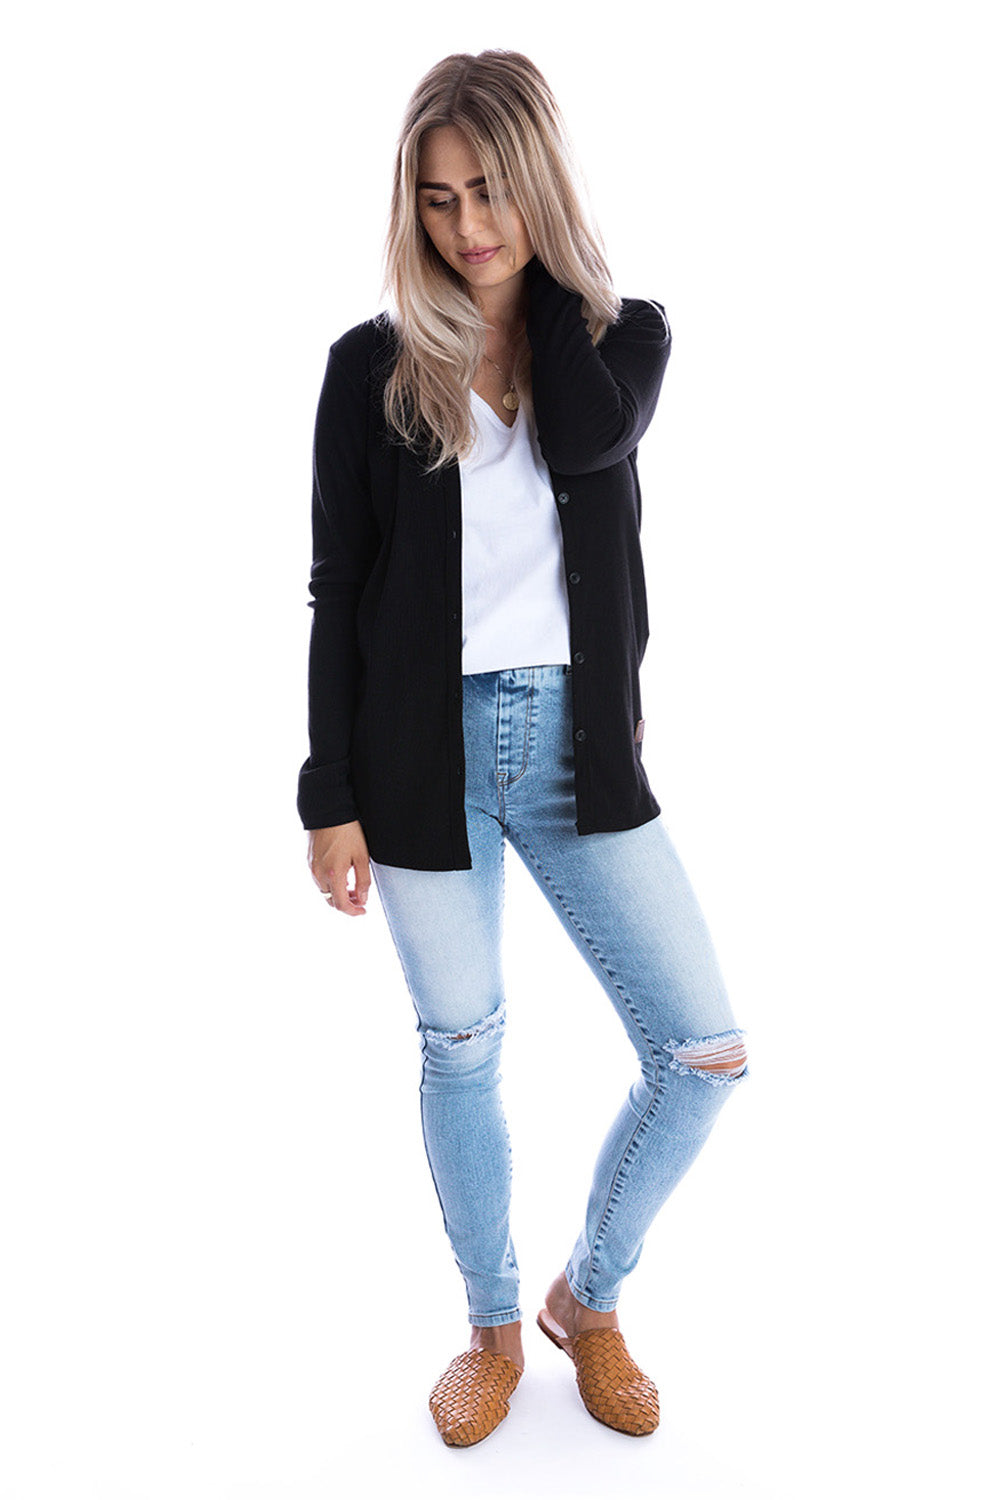 Signature Jet Black Cardigan - Womens by Beau Hudson 2